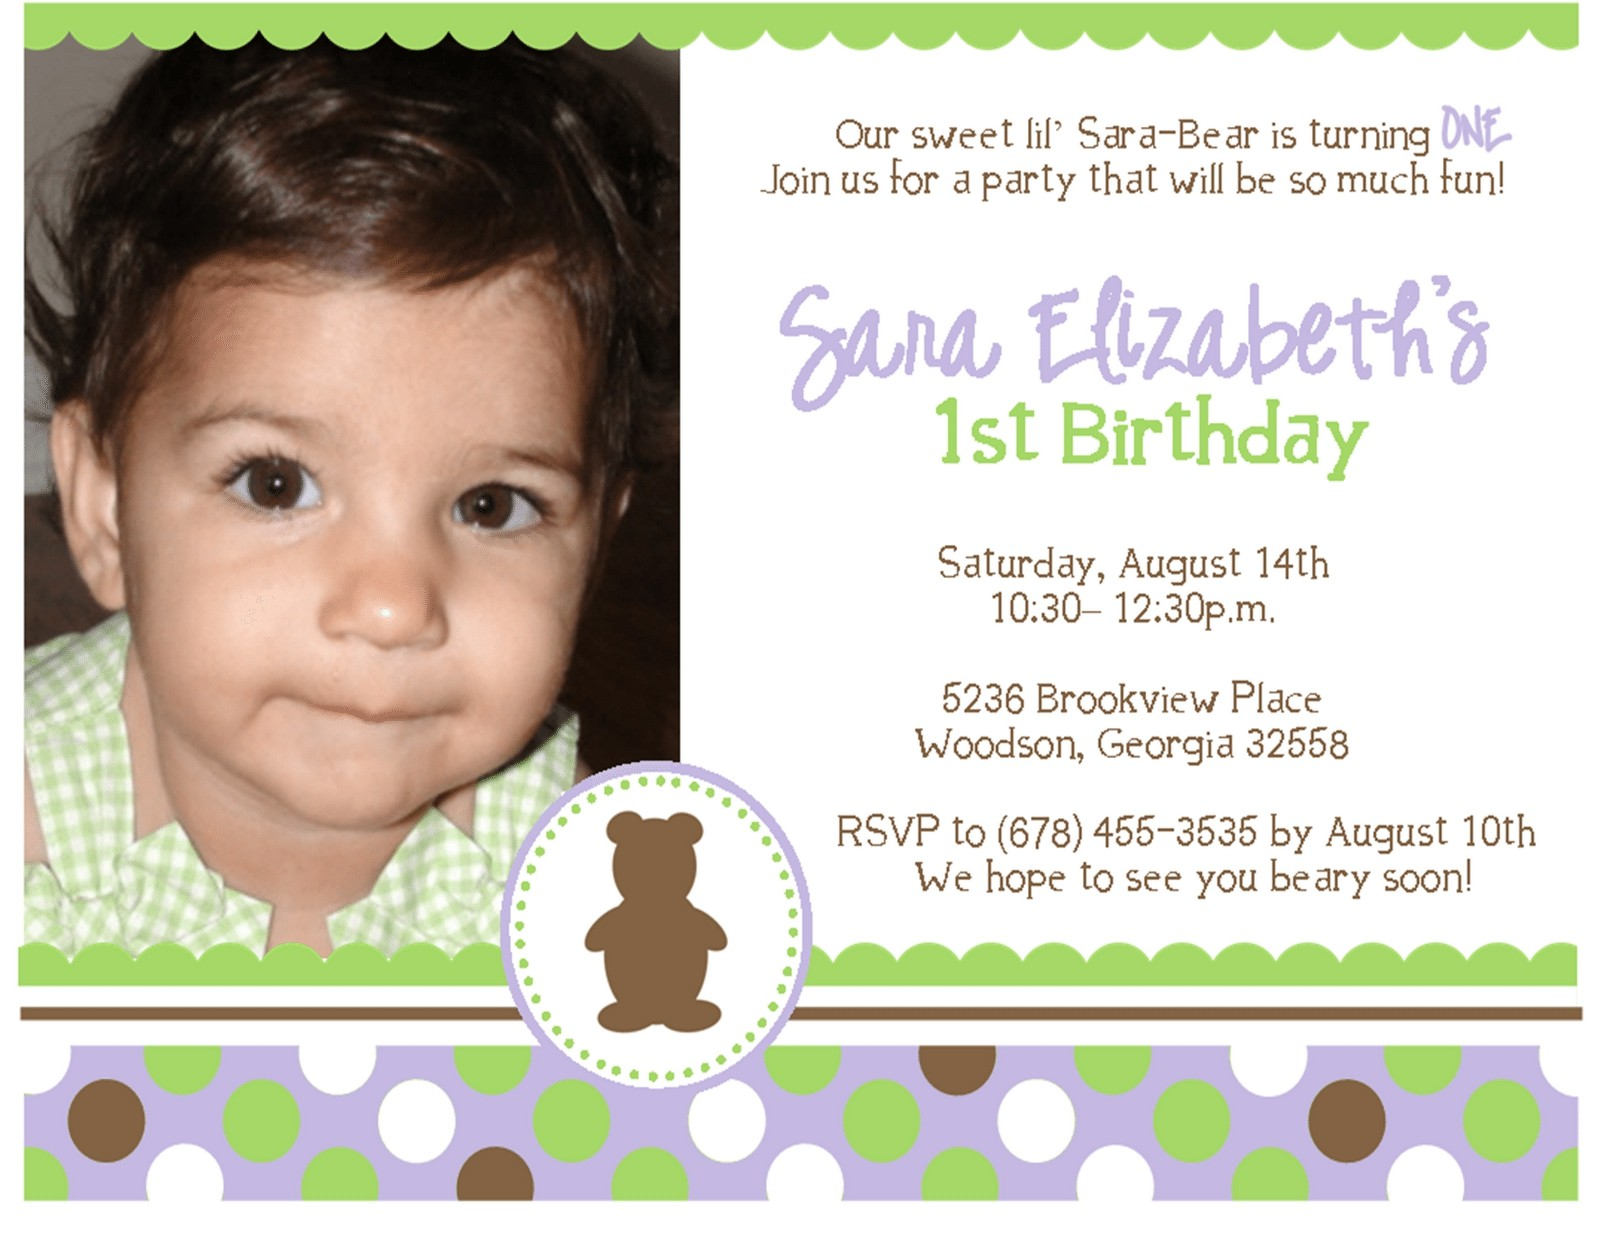 1st birthday invitation quotes for baby girl ; birthday-invitation-sample-for-baby-girl-best-of-baby-boy-first-birthday-invitation-quotes-42672-linegardmed-com